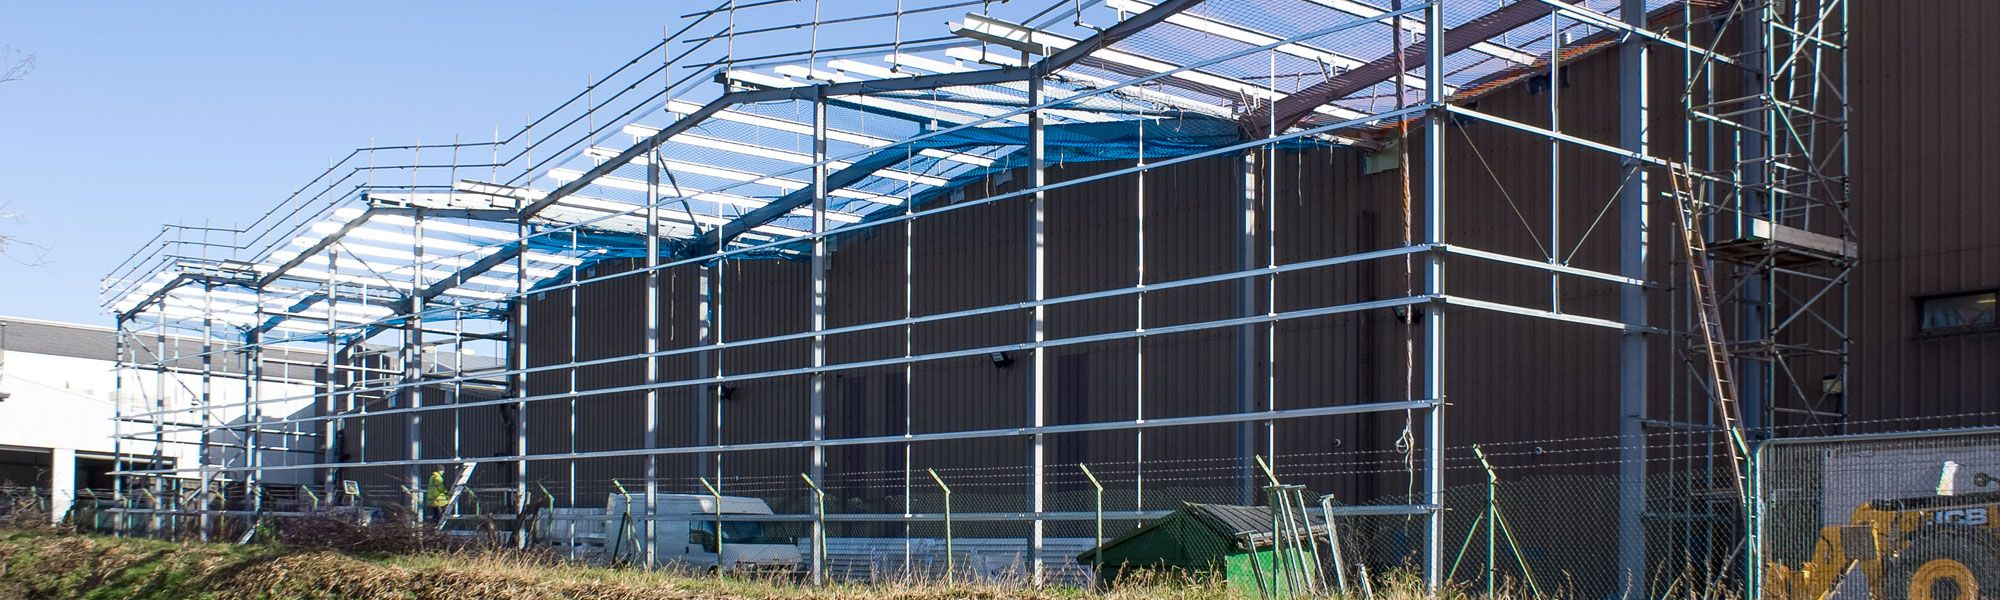 Building being constructed on Wrexham Industrial Estate